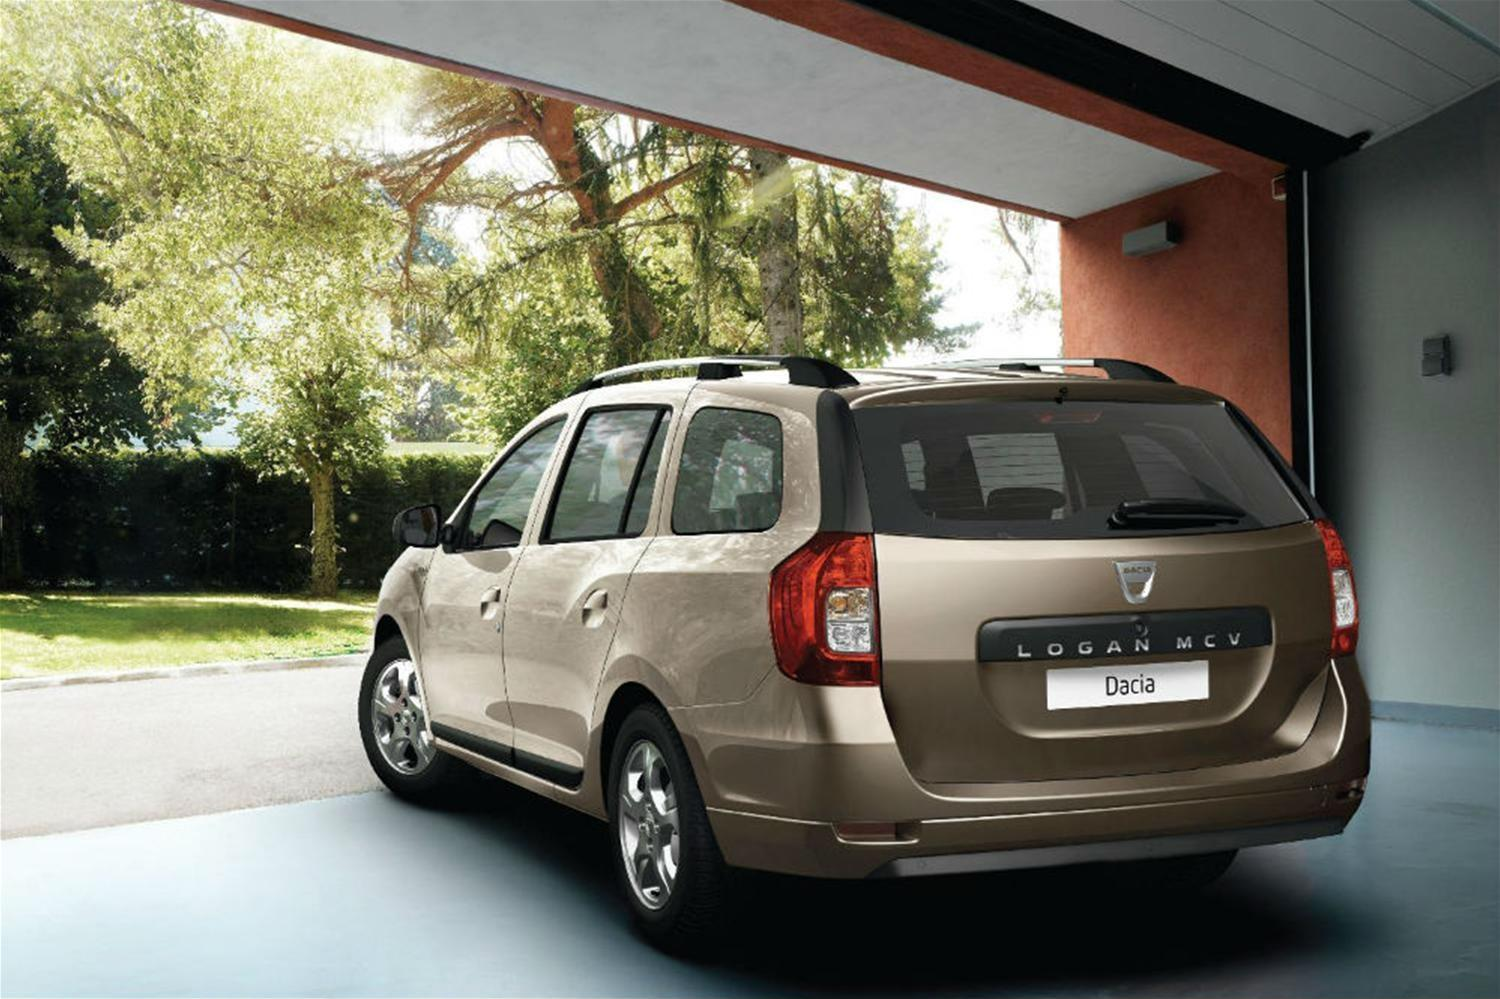 Dacia Logan MCV – The most affordable new estate car